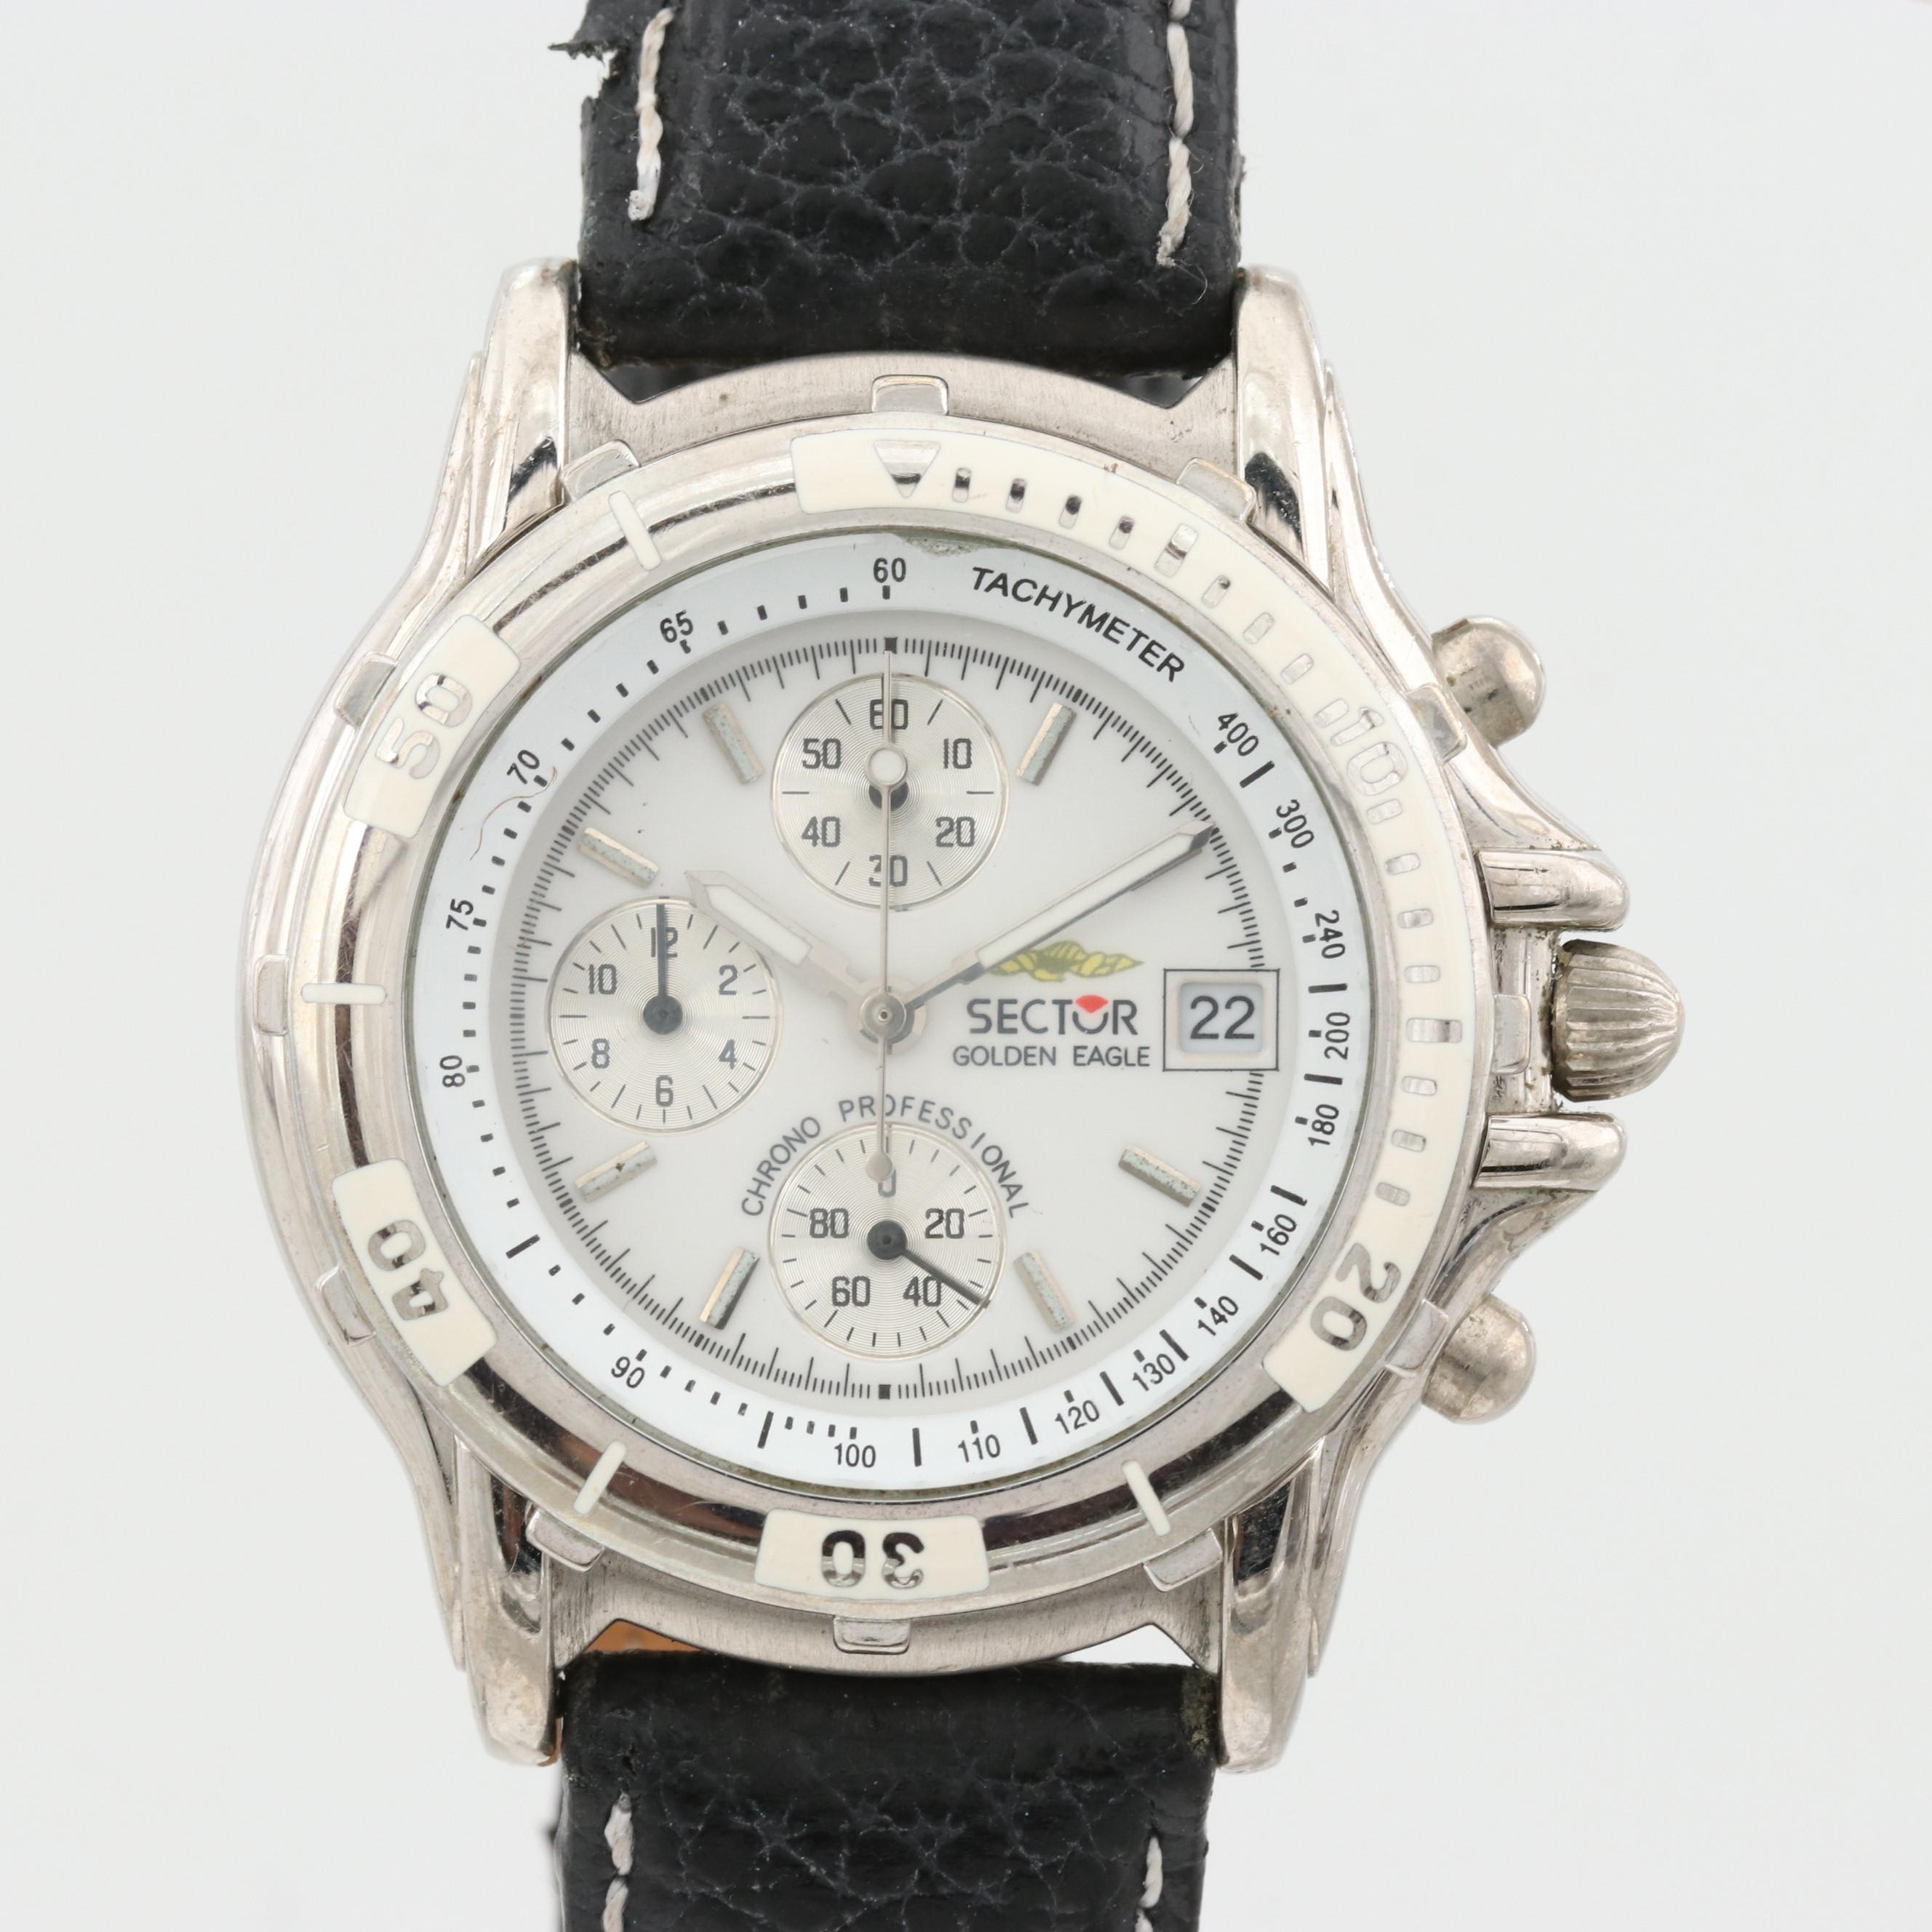 Sector Golden Eagle Silver Tone Quartz Chronograph Wristwatch